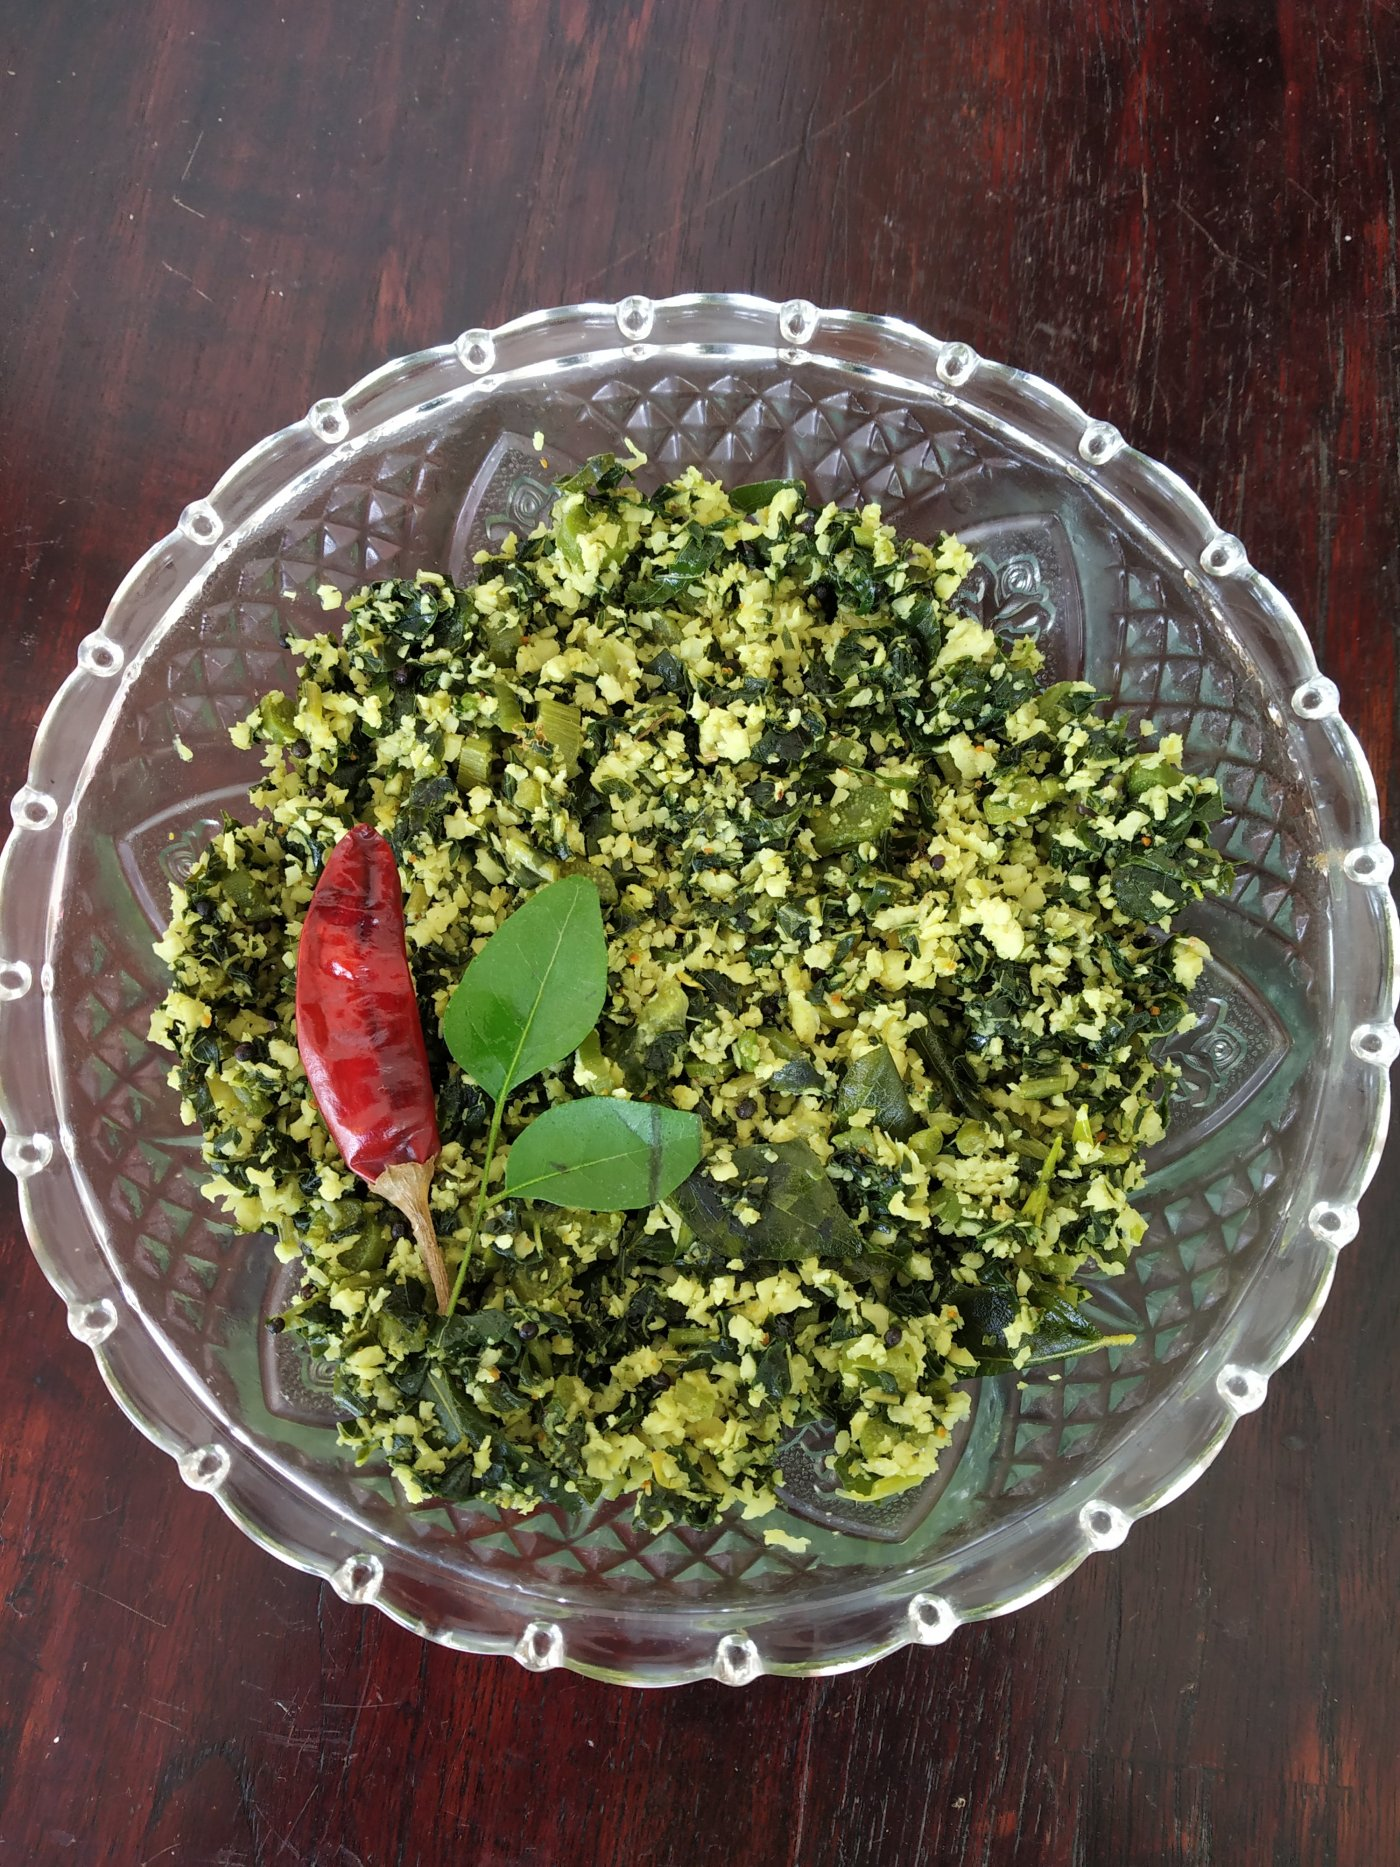 Spinach cooked with food, healthy and delicious.